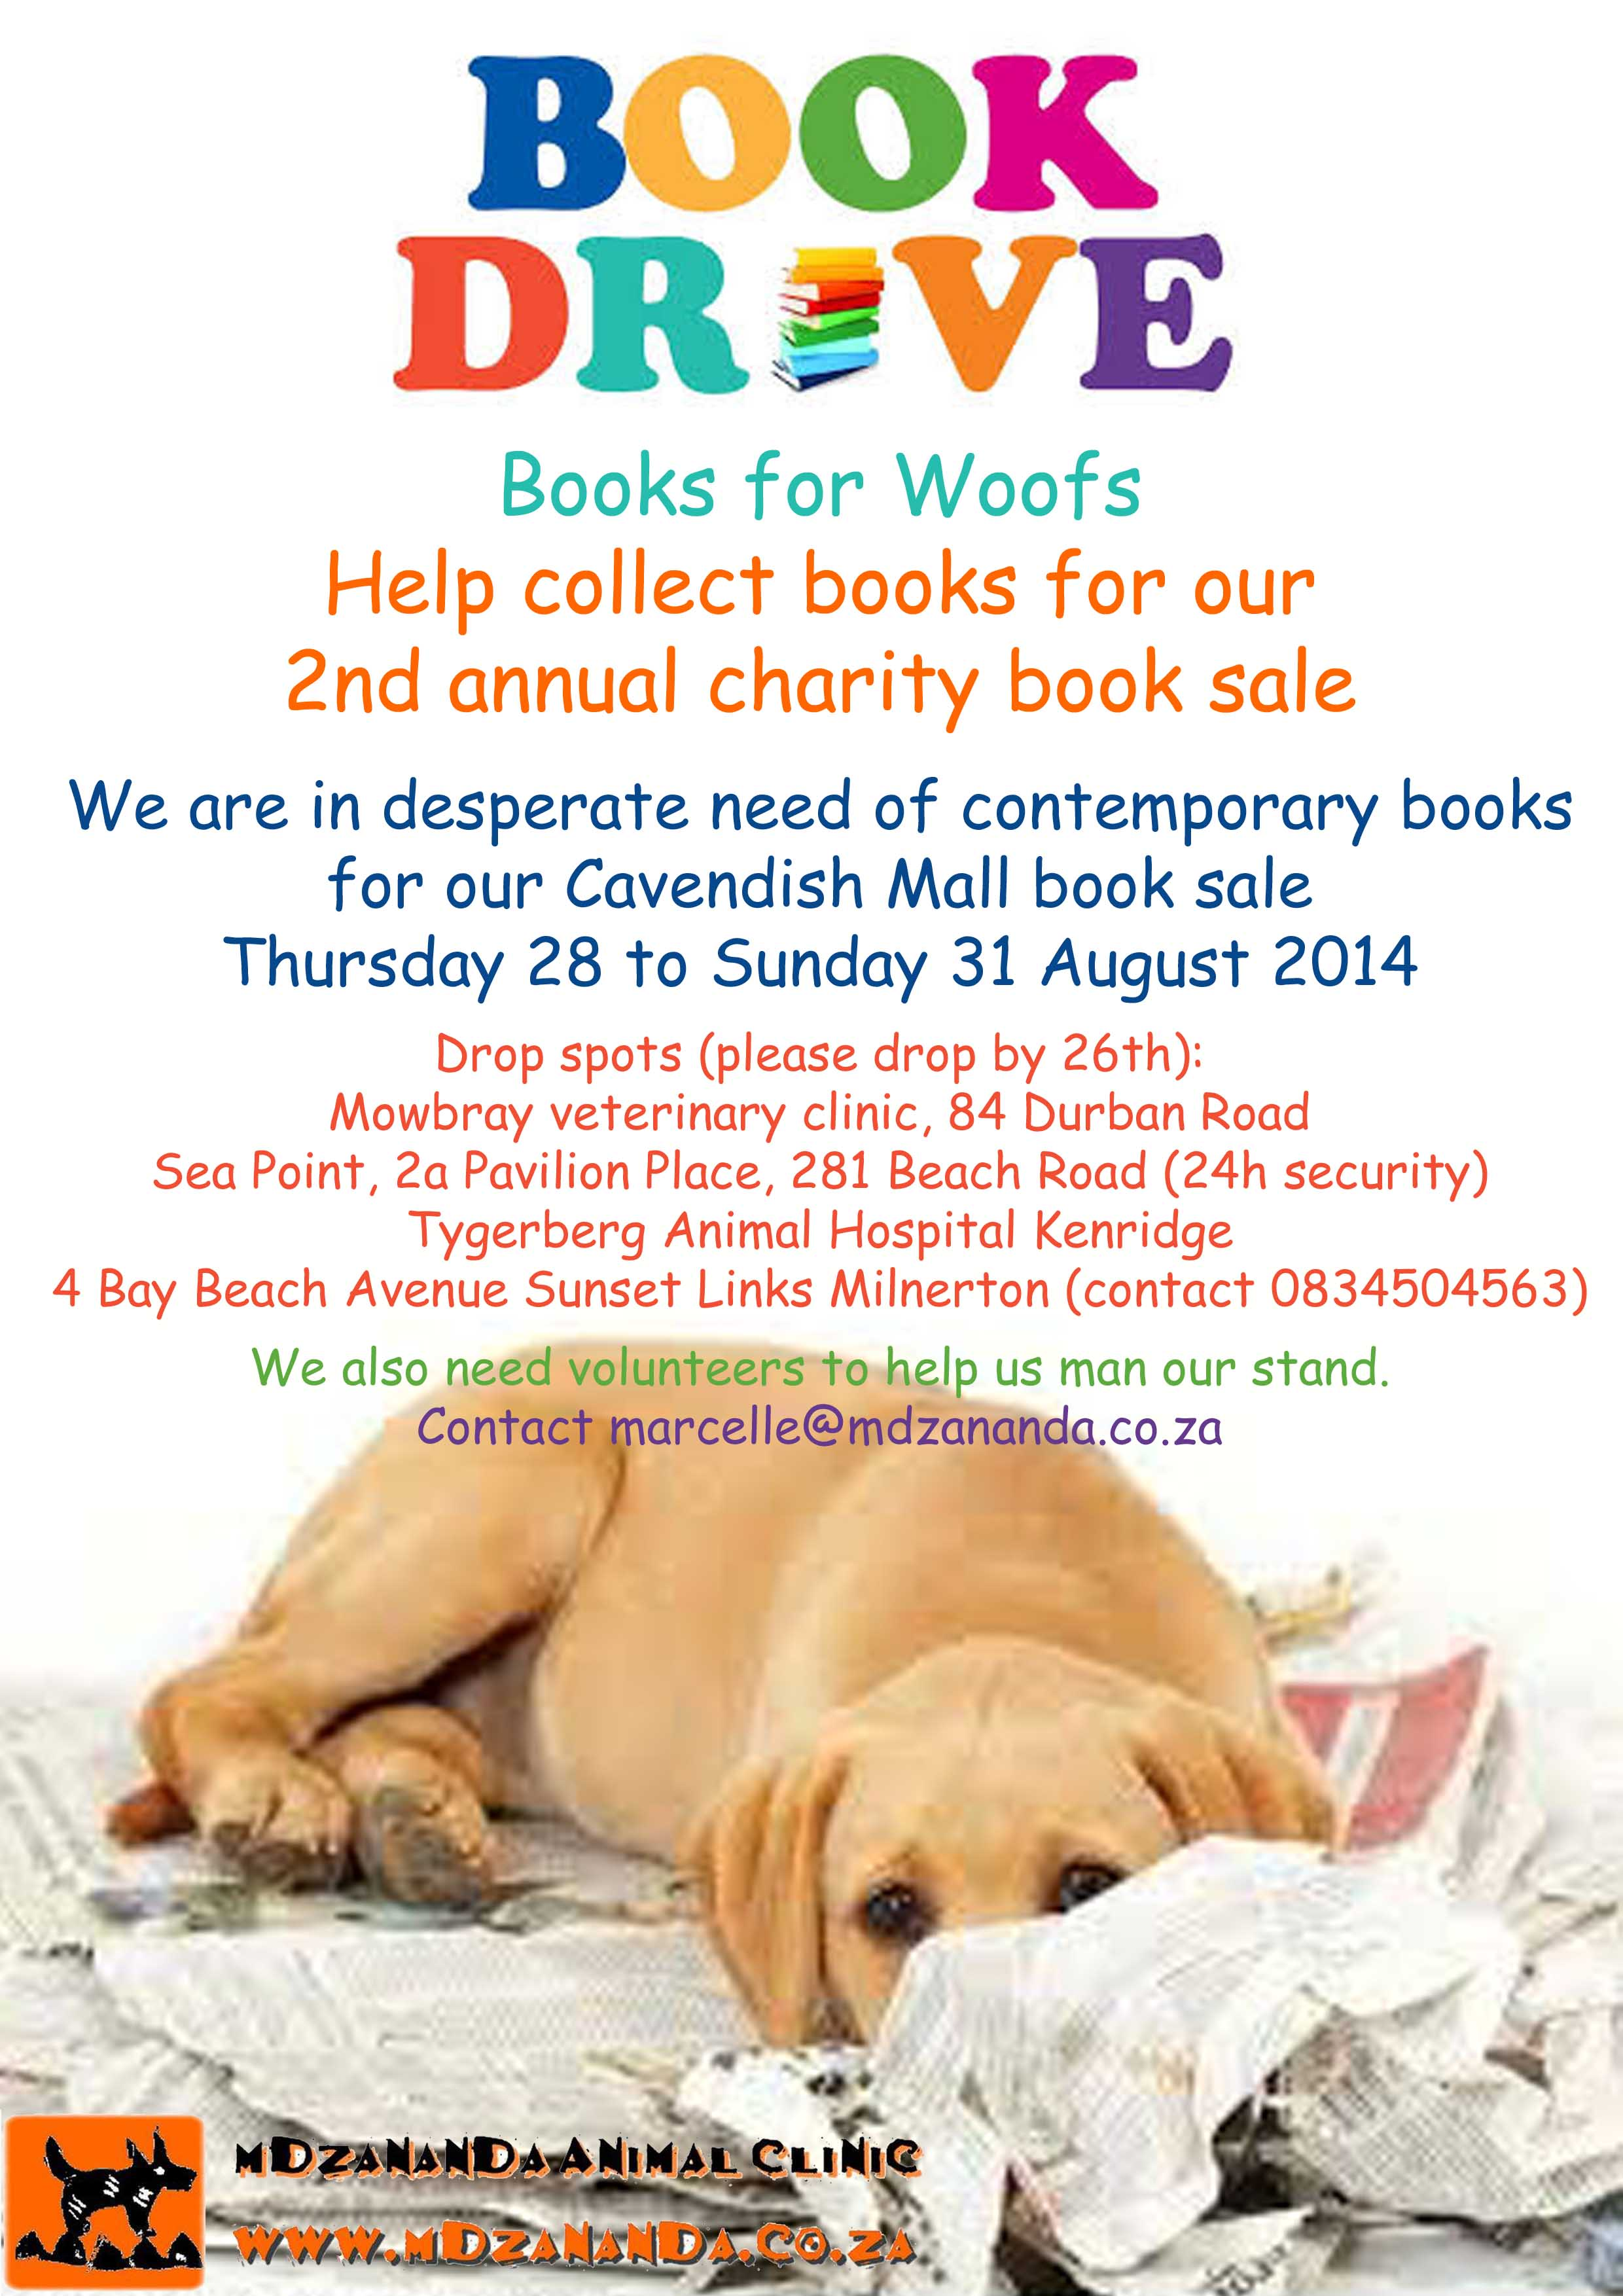 books for woofs book drive doggy news. Black Bedroom Furniture Sets. Home Design Ideas